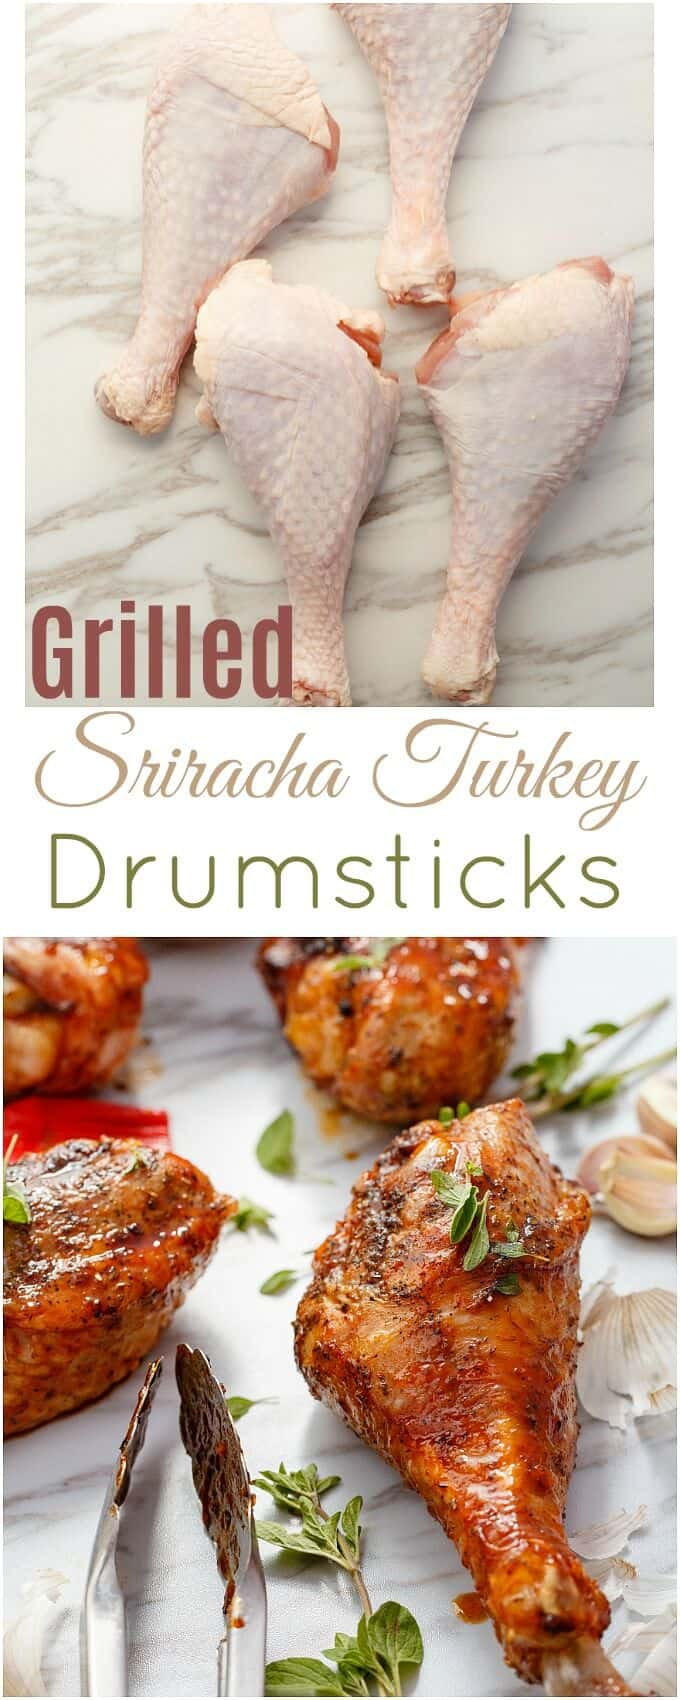 Grilled Sriracha Turkey Drumsticks